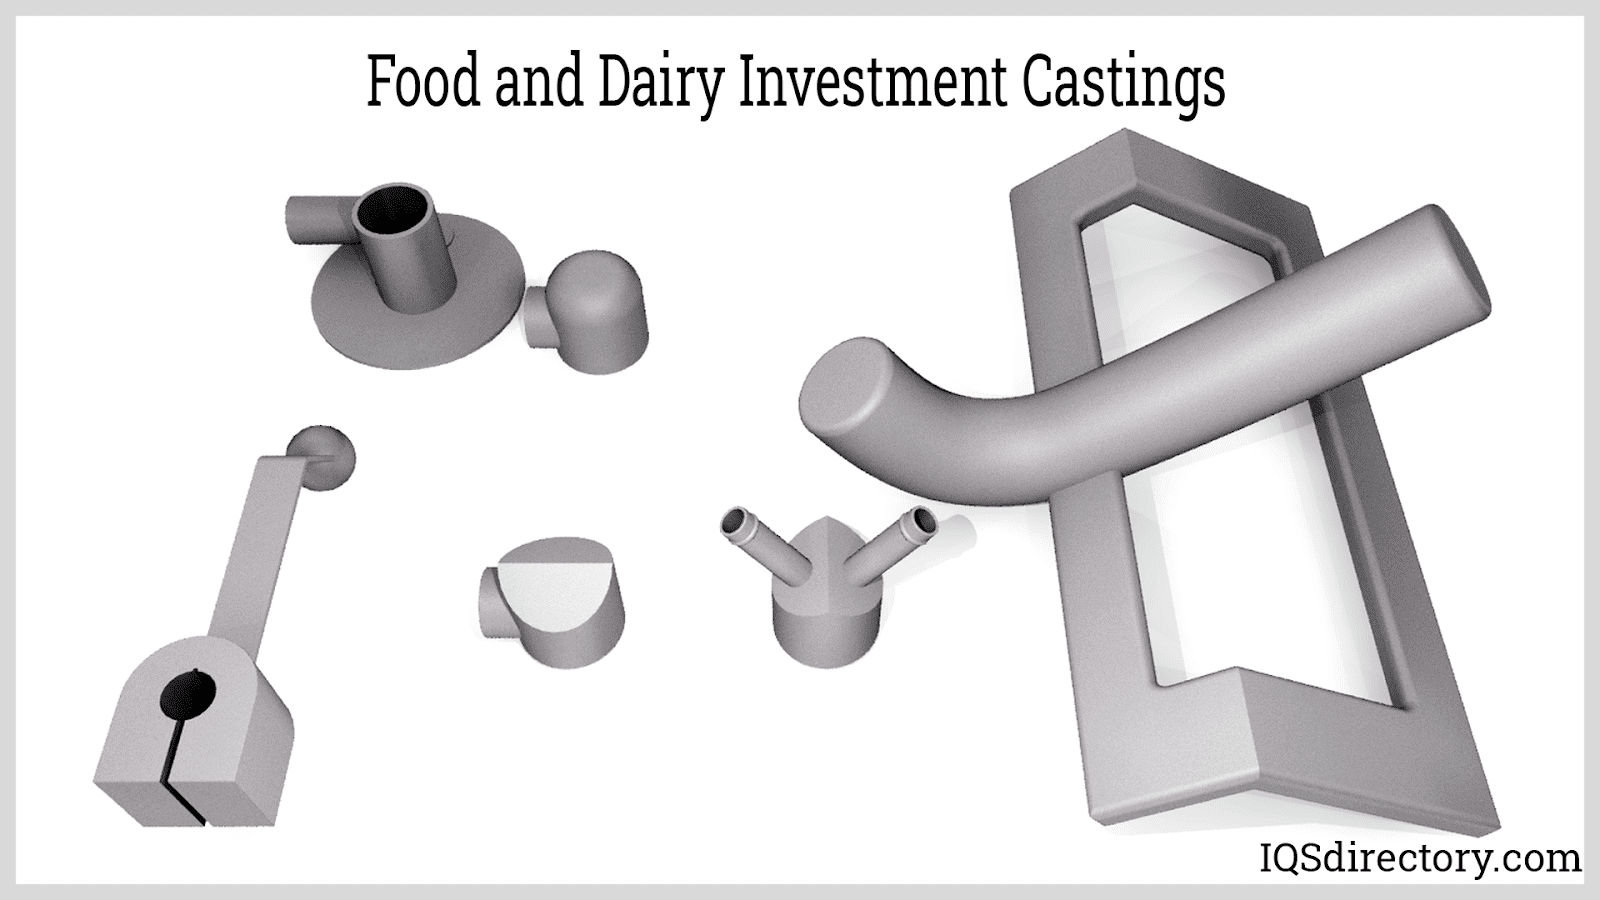 Food and Dairy Investment Castings